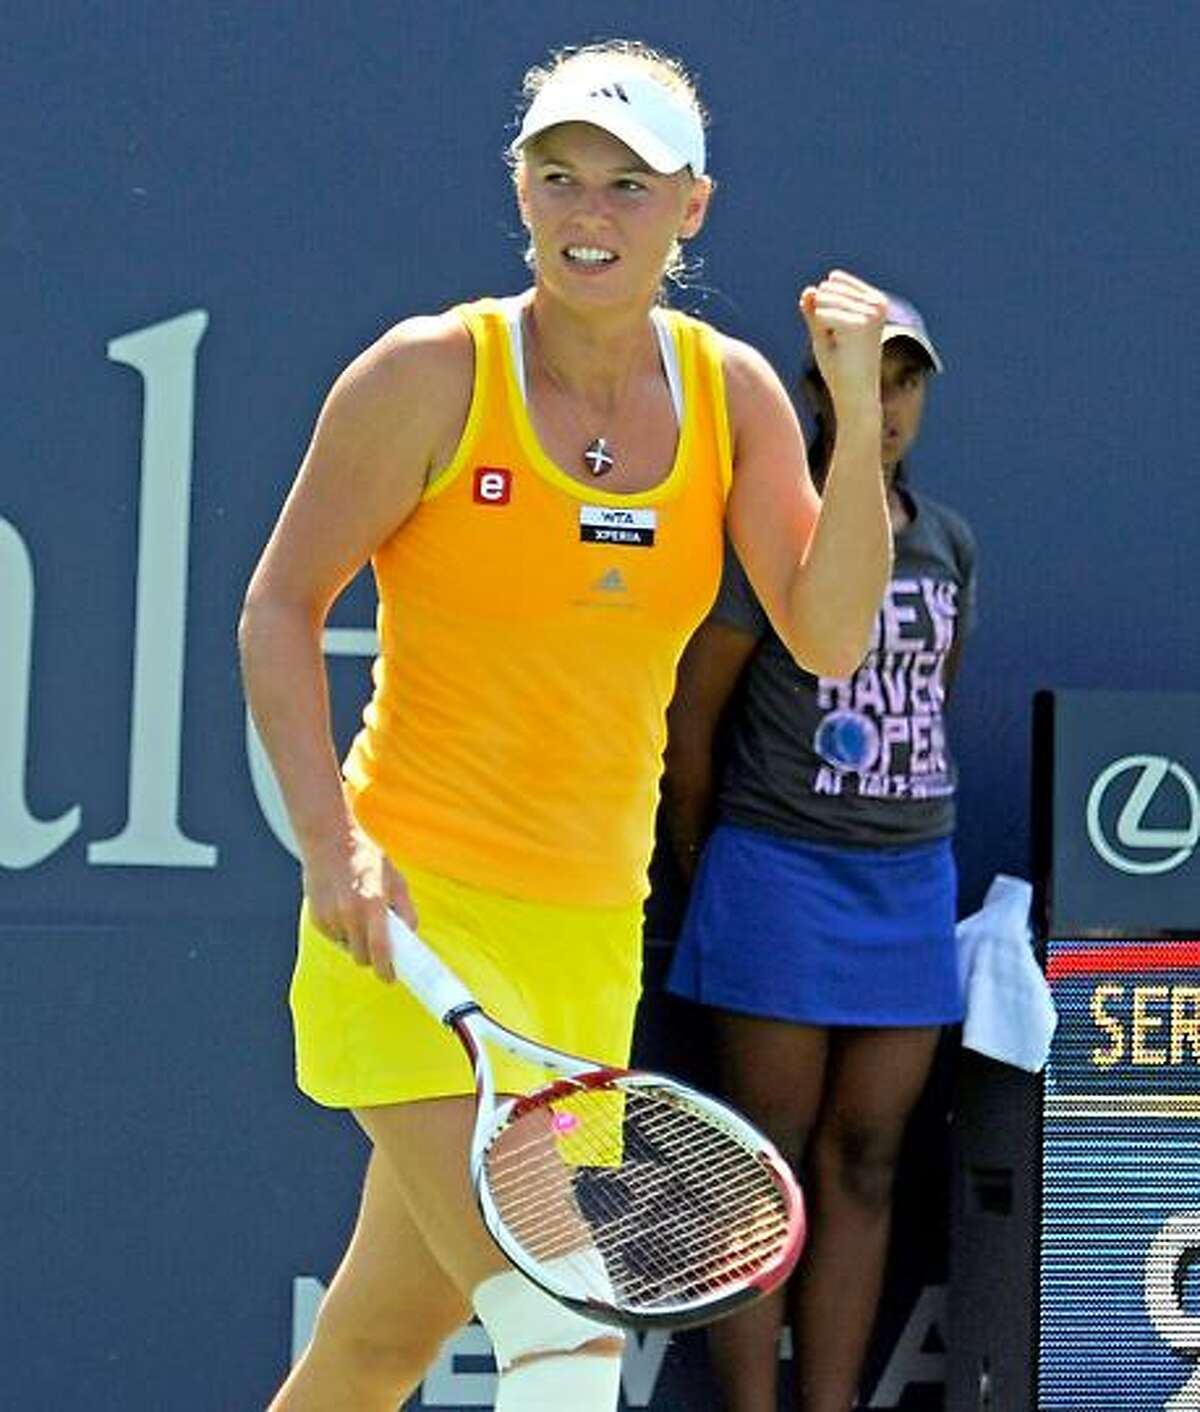 Caroline Wozniacki celebrates afte rshe won her quarterfinal singles match at the New Haven Open in New Haven, Conn., Thursday, Aug. 23, 2012. (Bob Child Photo)